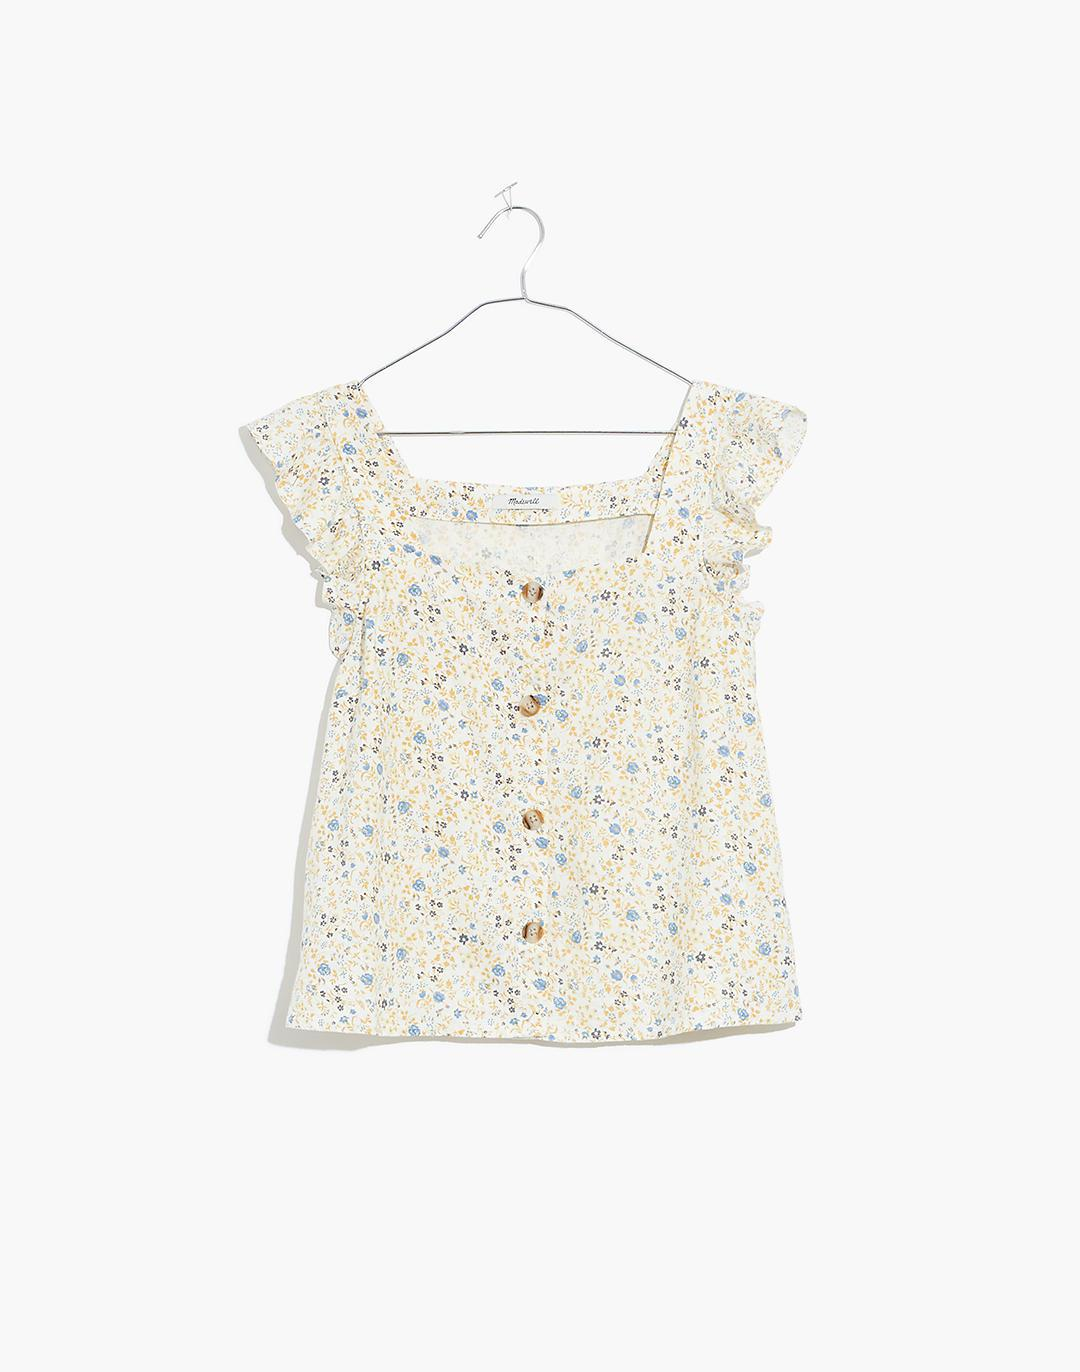 Linen-Blend Ruffle-Strap Button-Up Tank Top in Folkmagic Floral 4